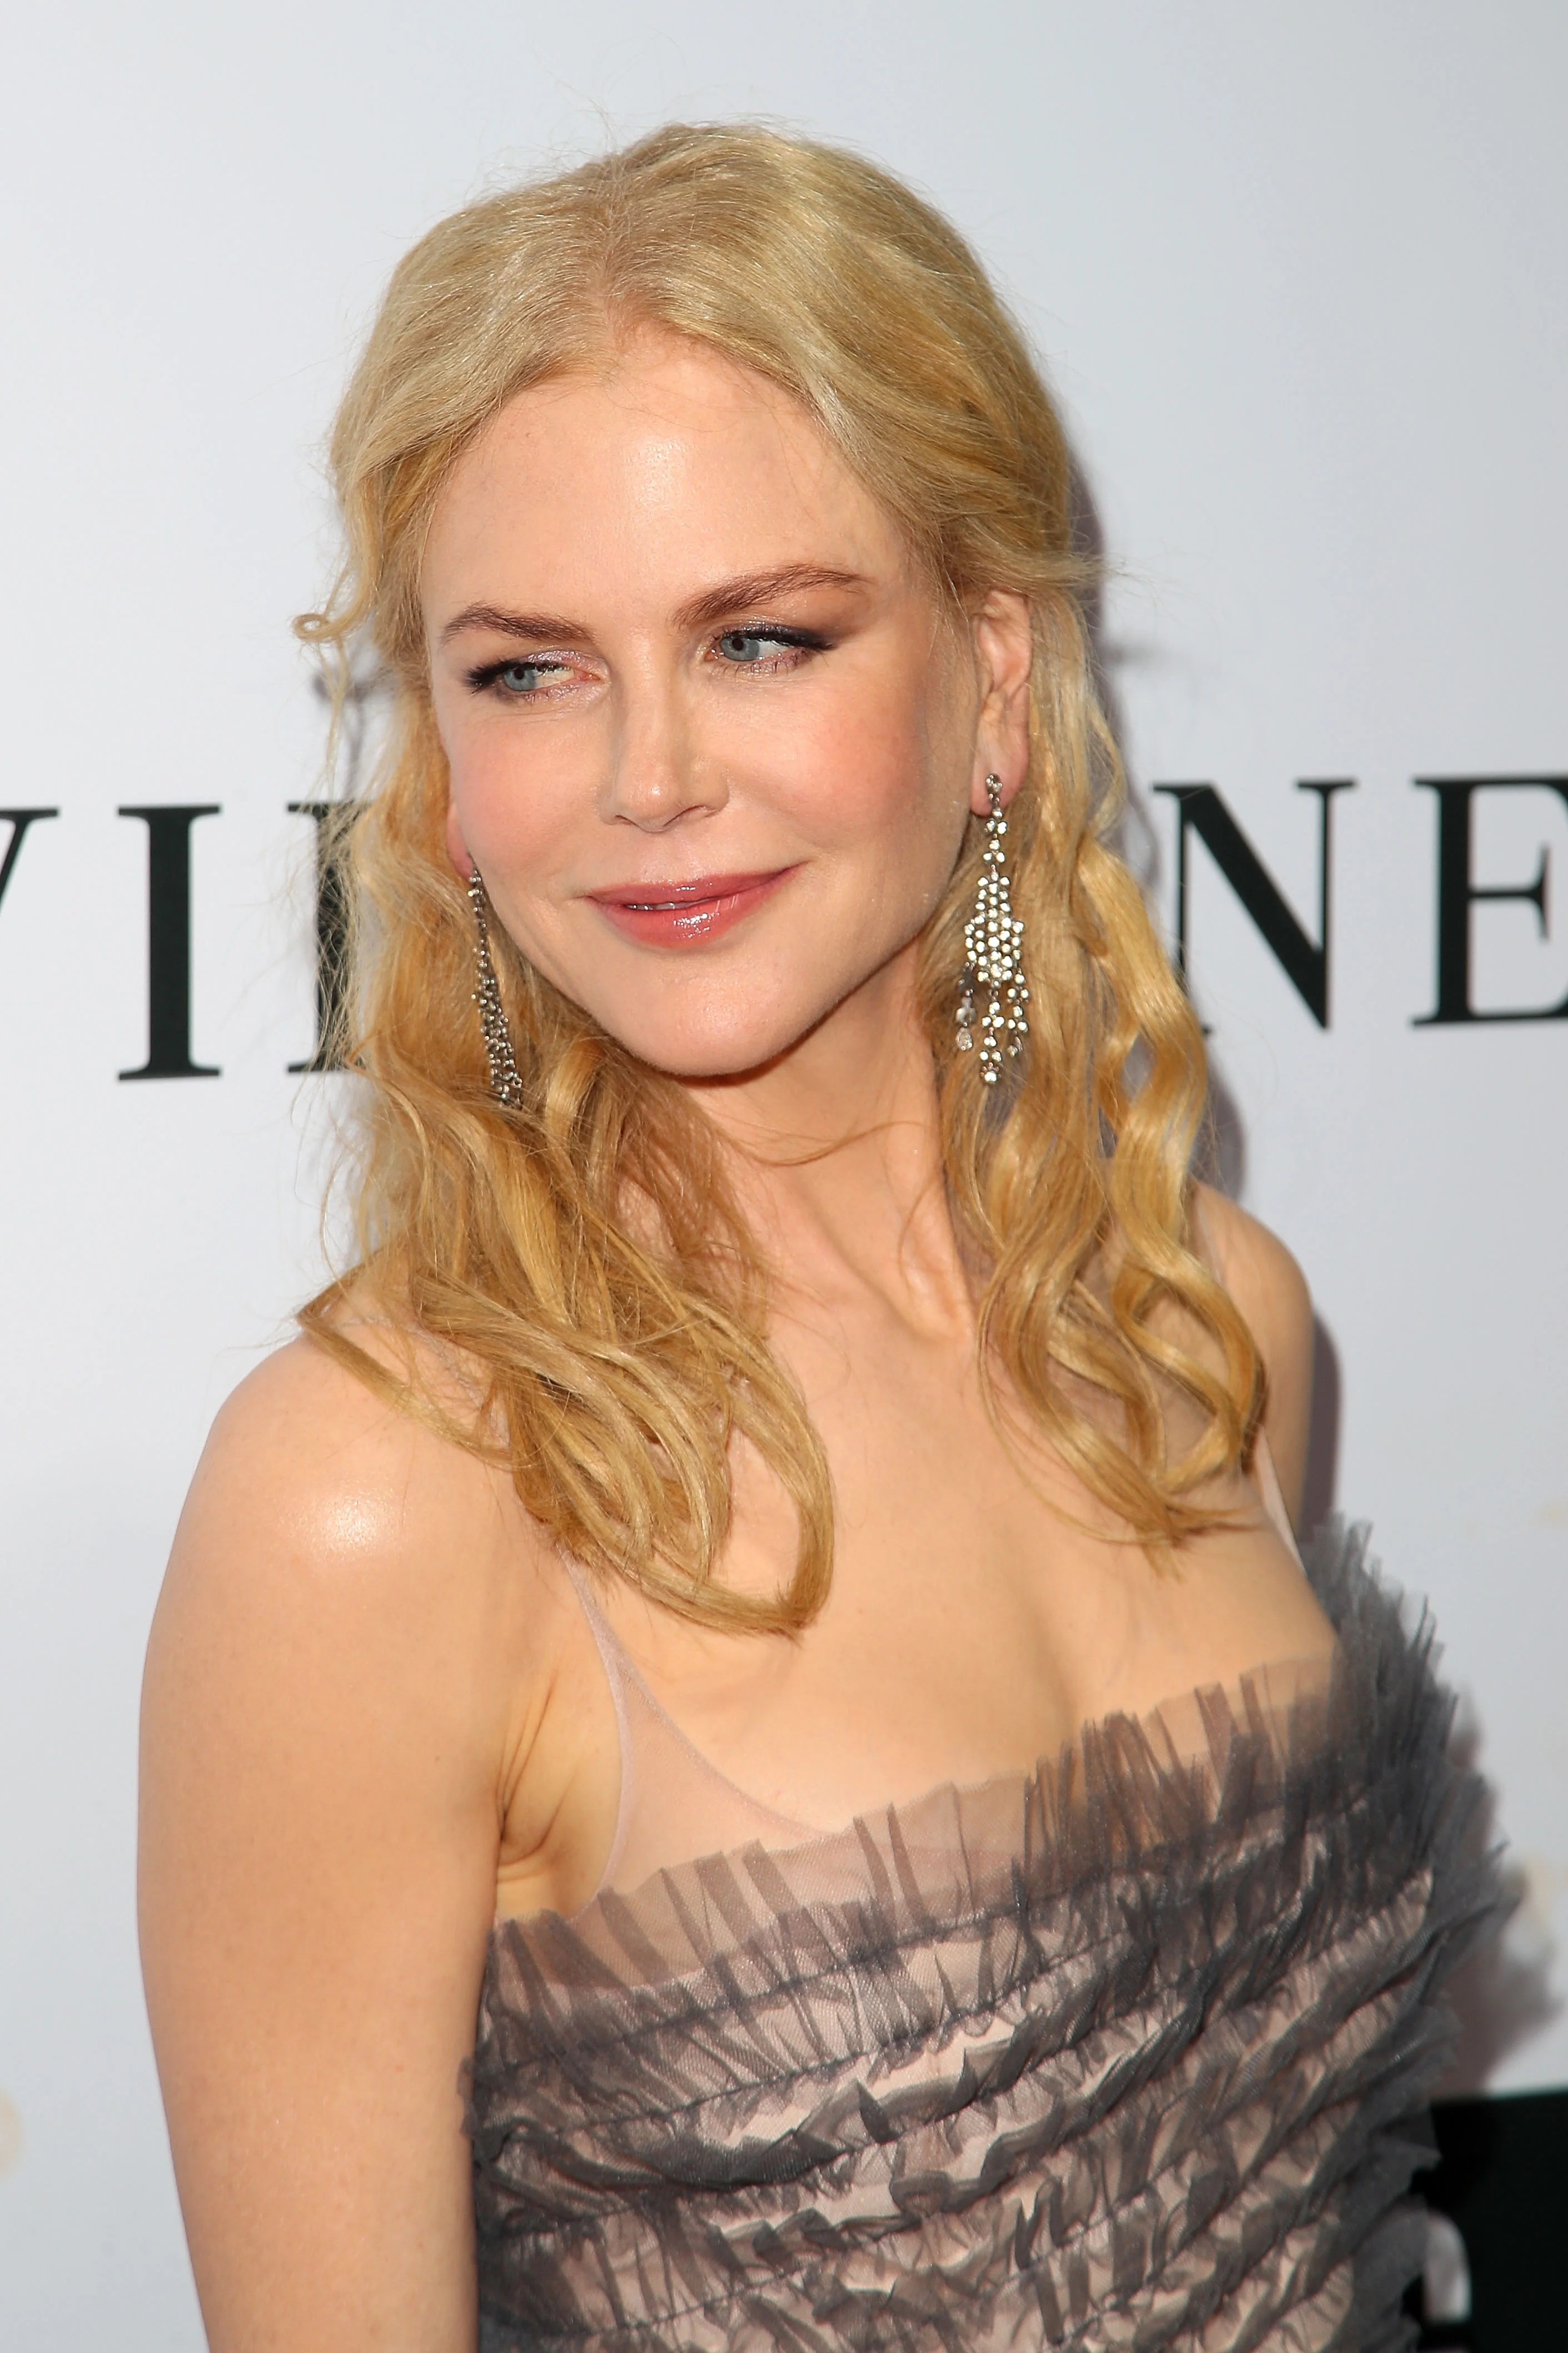 Nicole Kidman Stuns In Ruffled Gown At NGV Gala See The